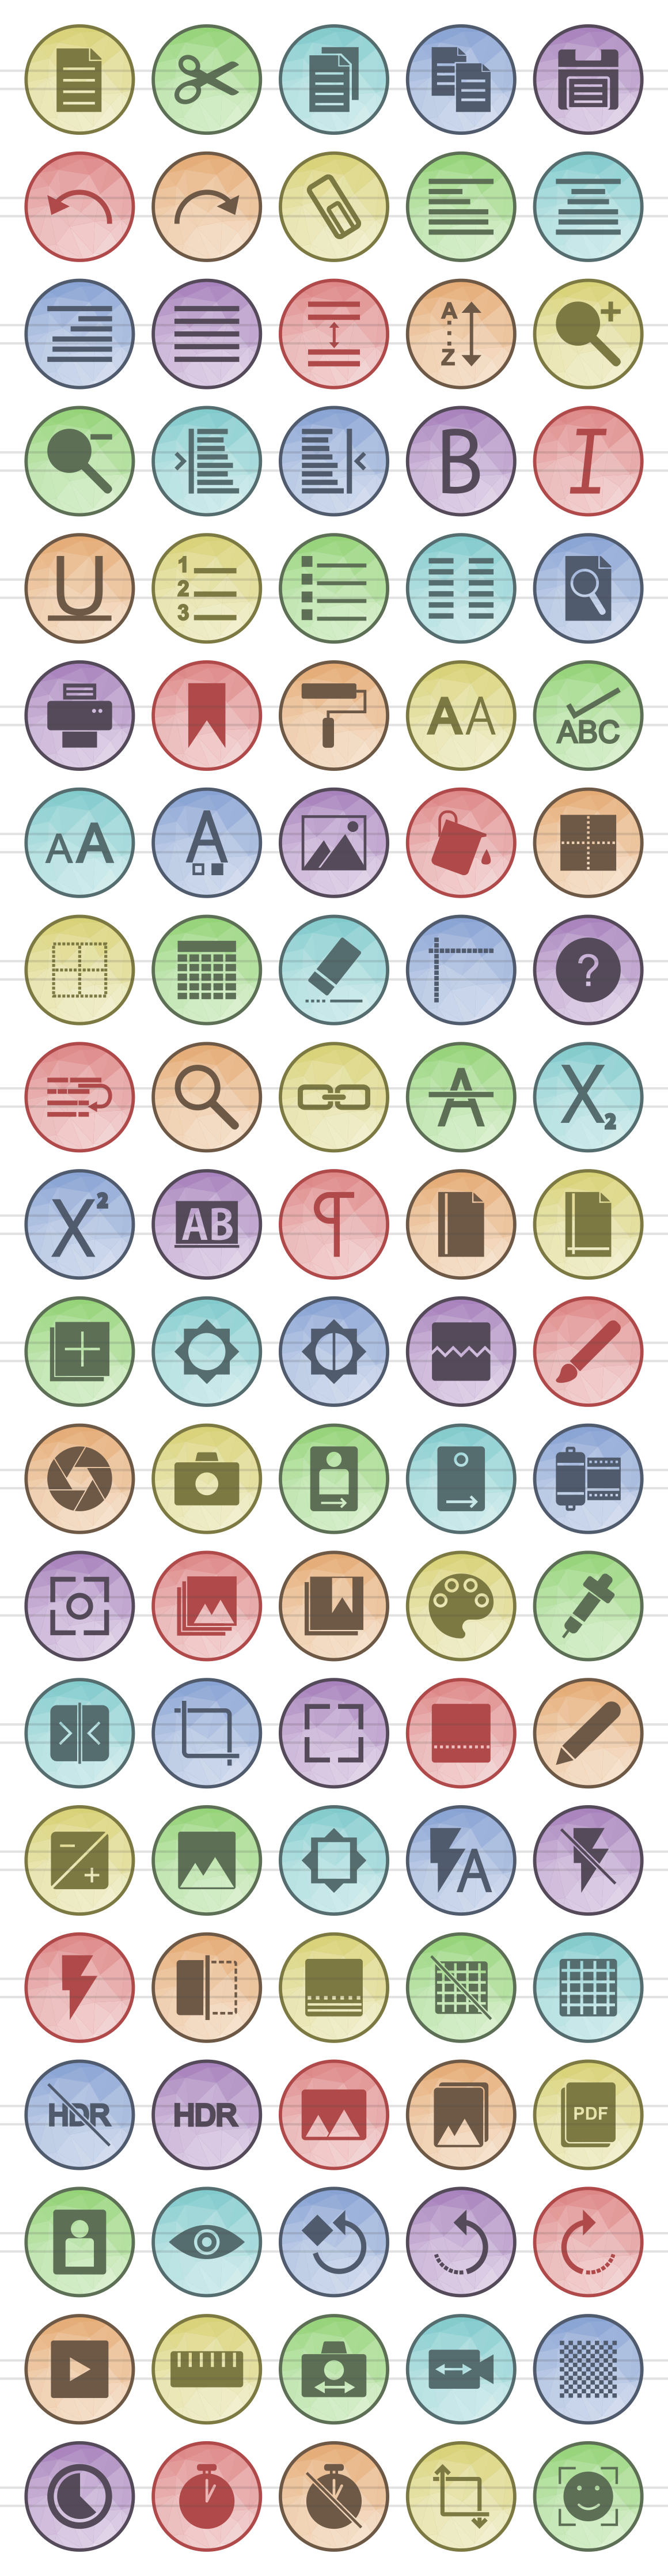 100 Photo & Text Editing Filled Low Poly Icons example image 2